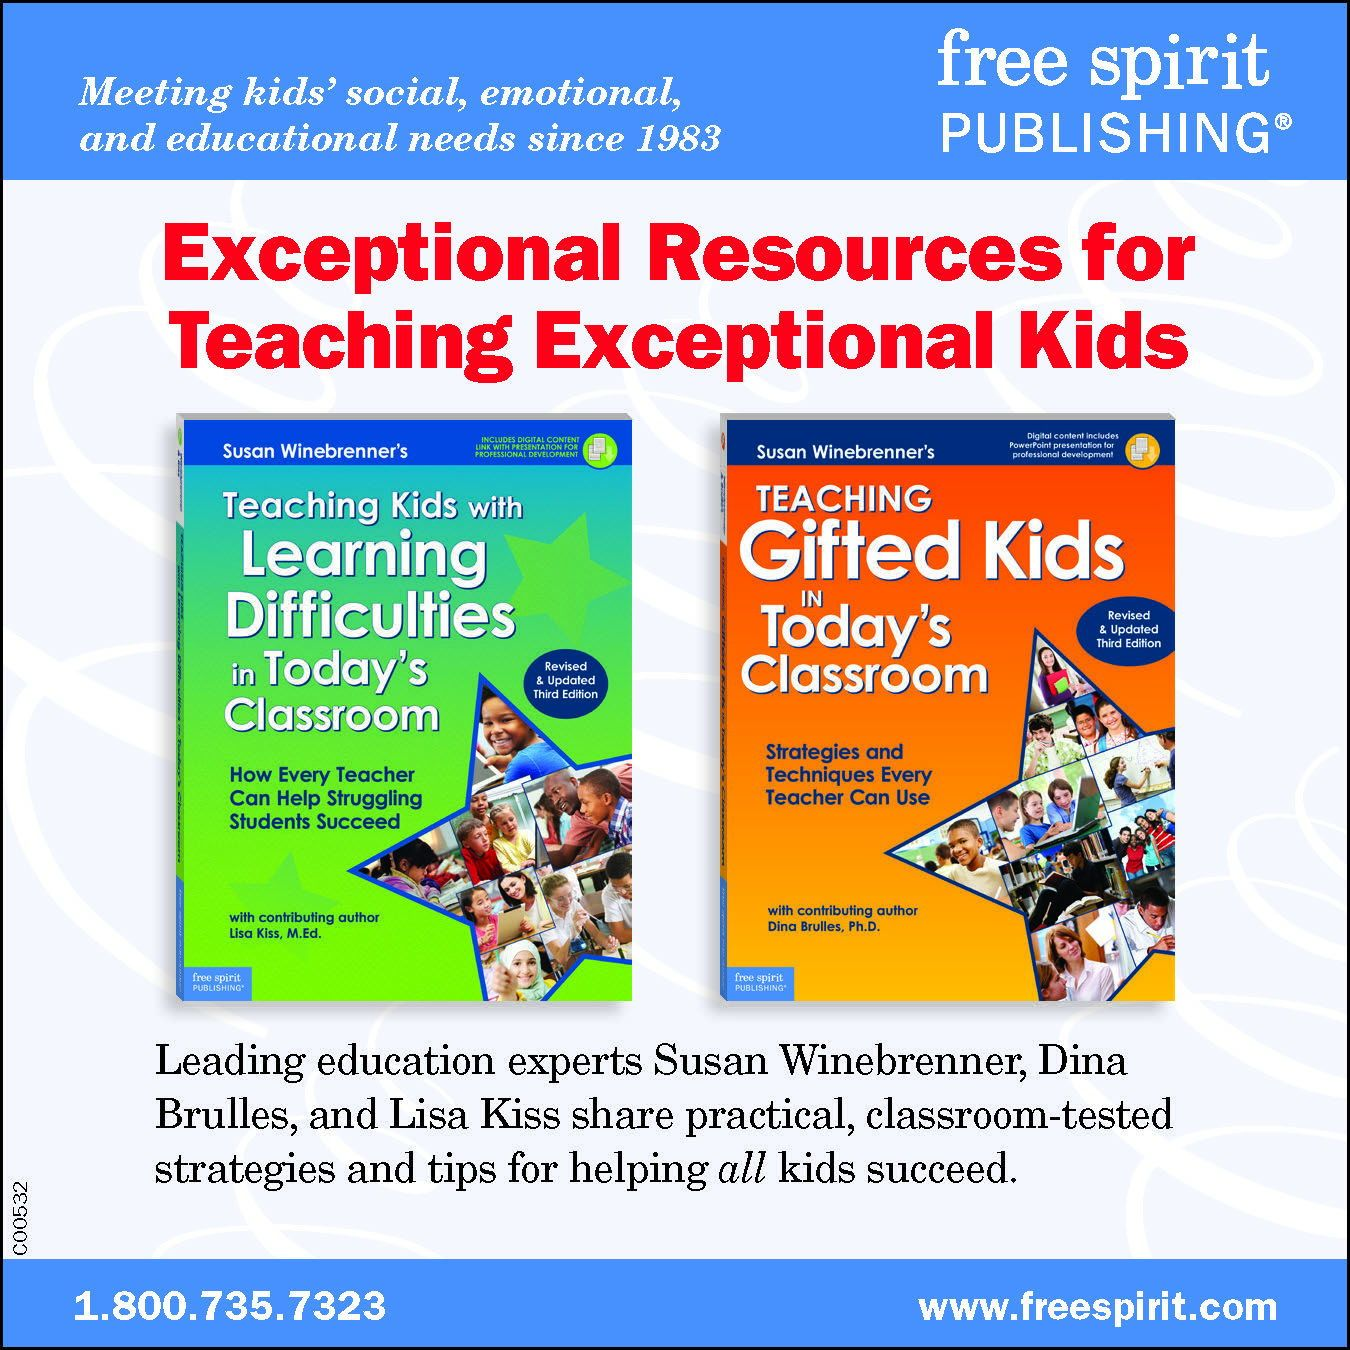 Use Teaching Gifted Kids in Today's Classroom and Teaching Kids with  Learning Difficulties in Today's Classroom